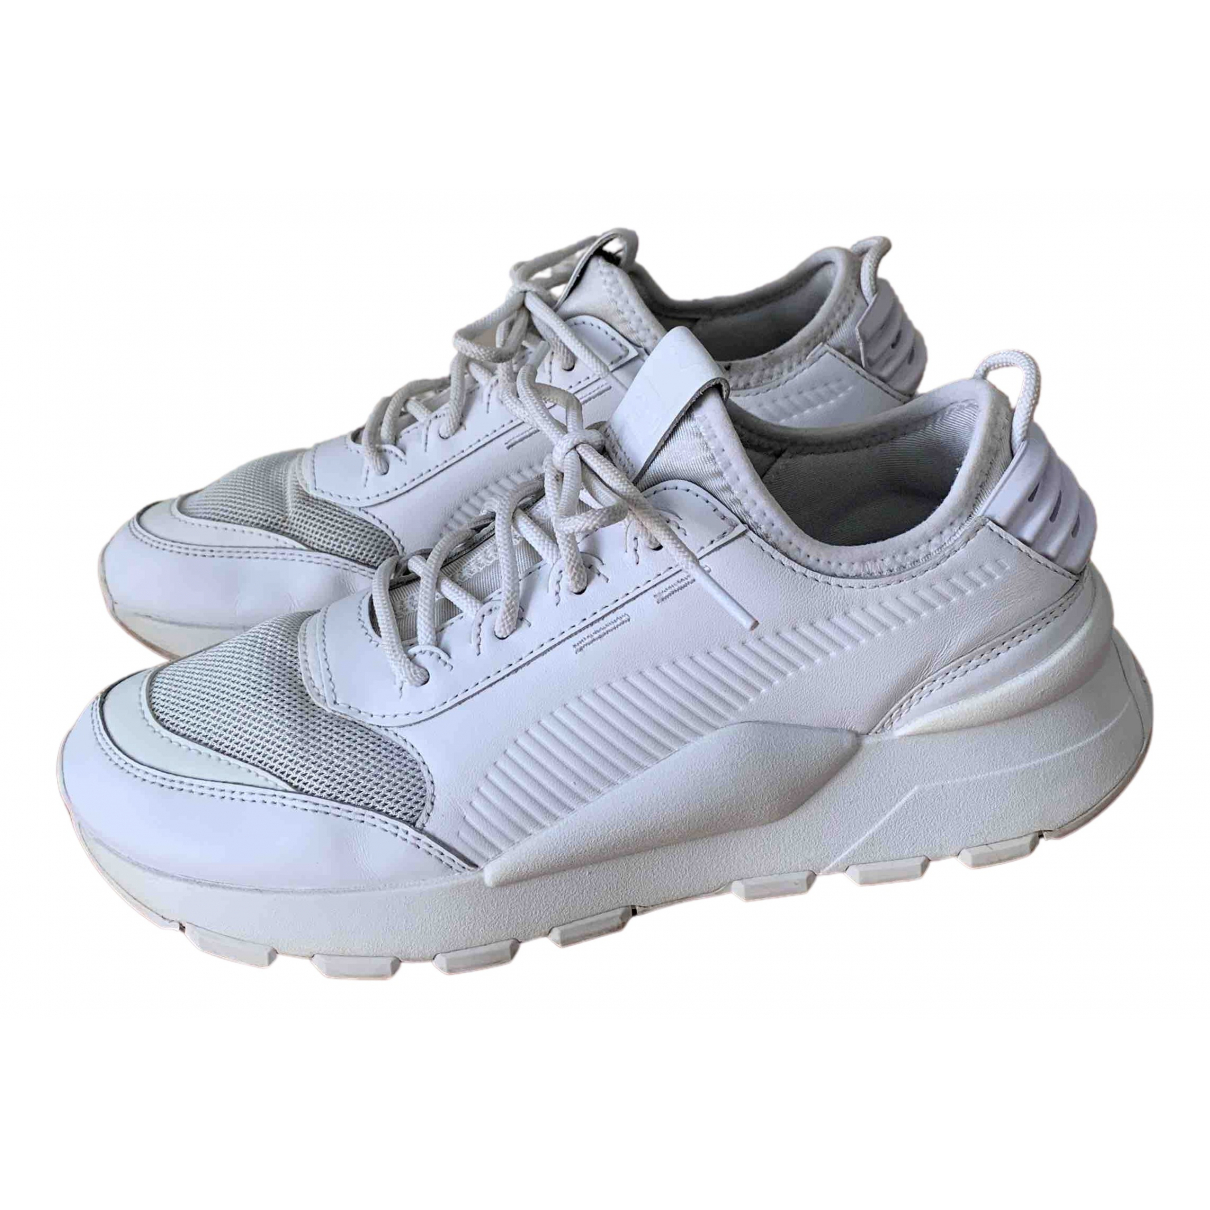 Puma \N Sneakers in  Weiss Leder